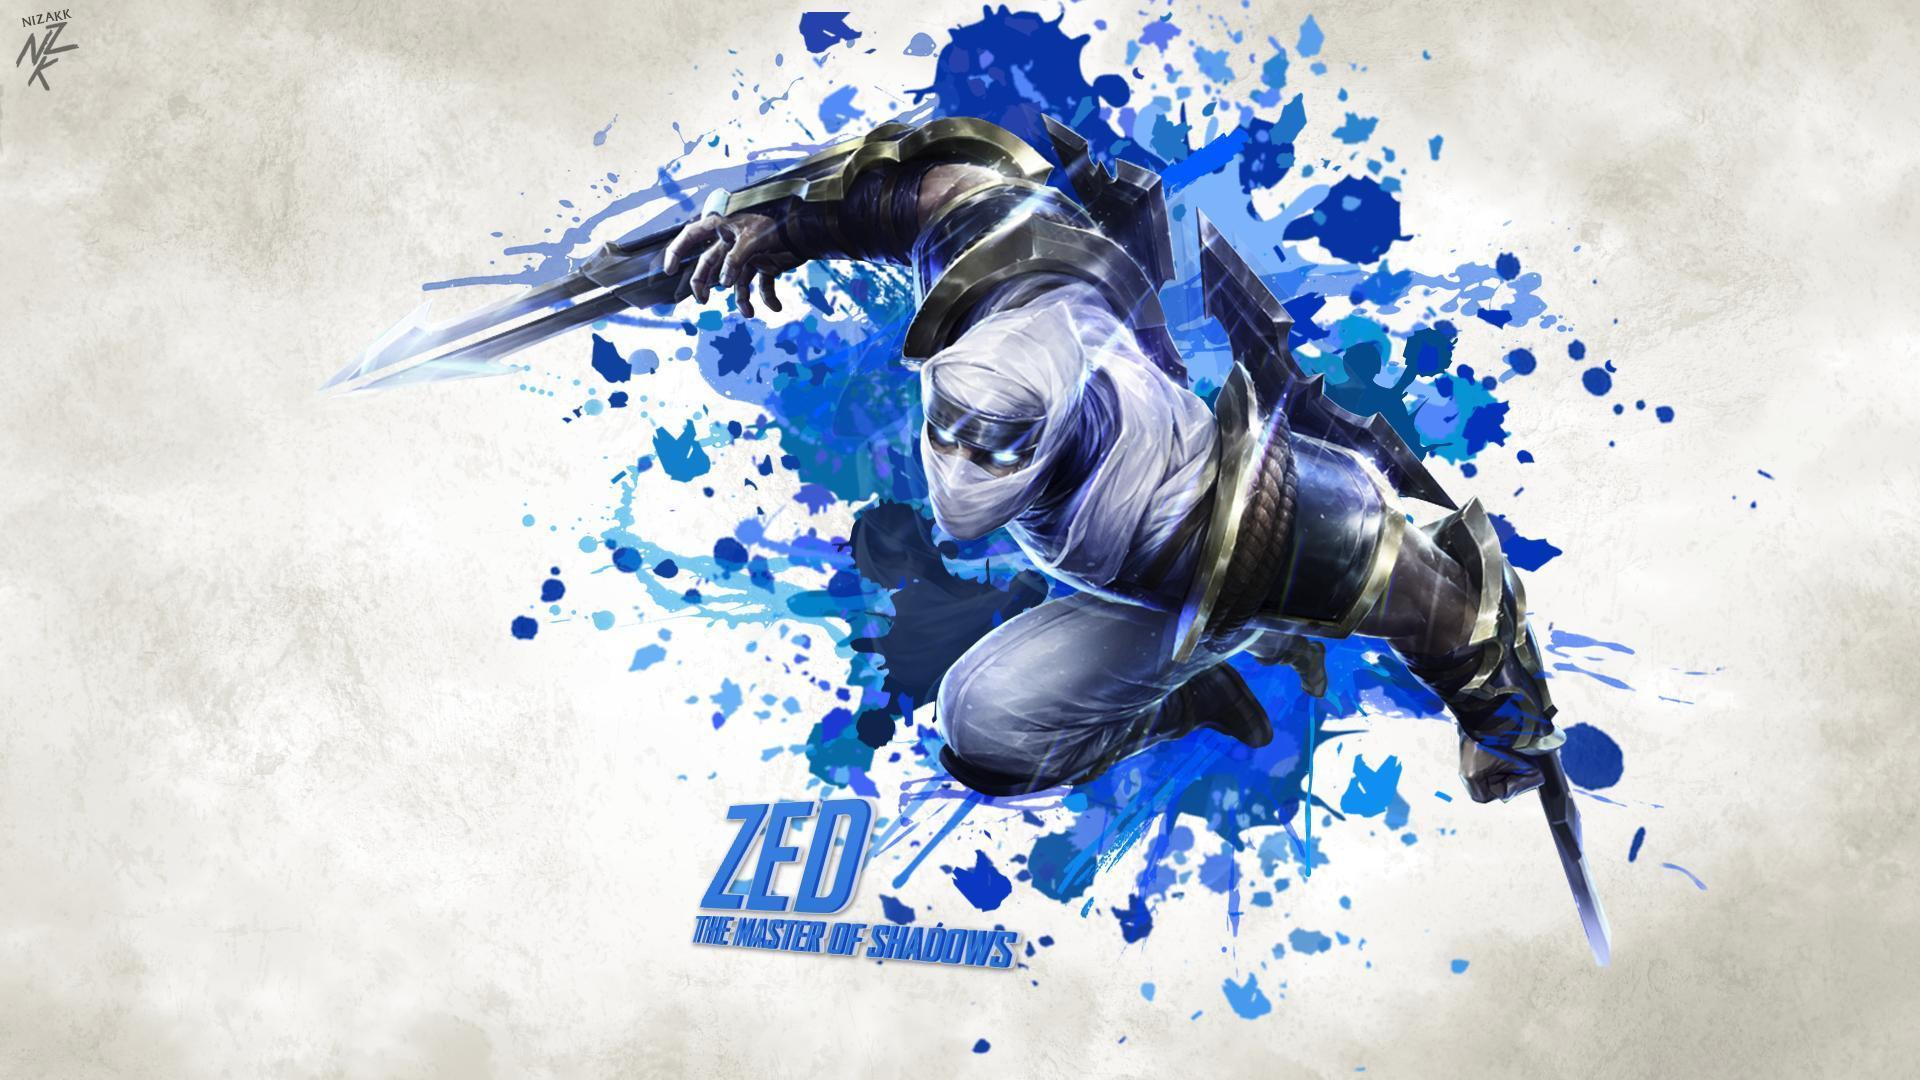 Wallpapers For > Zed Wallpapers